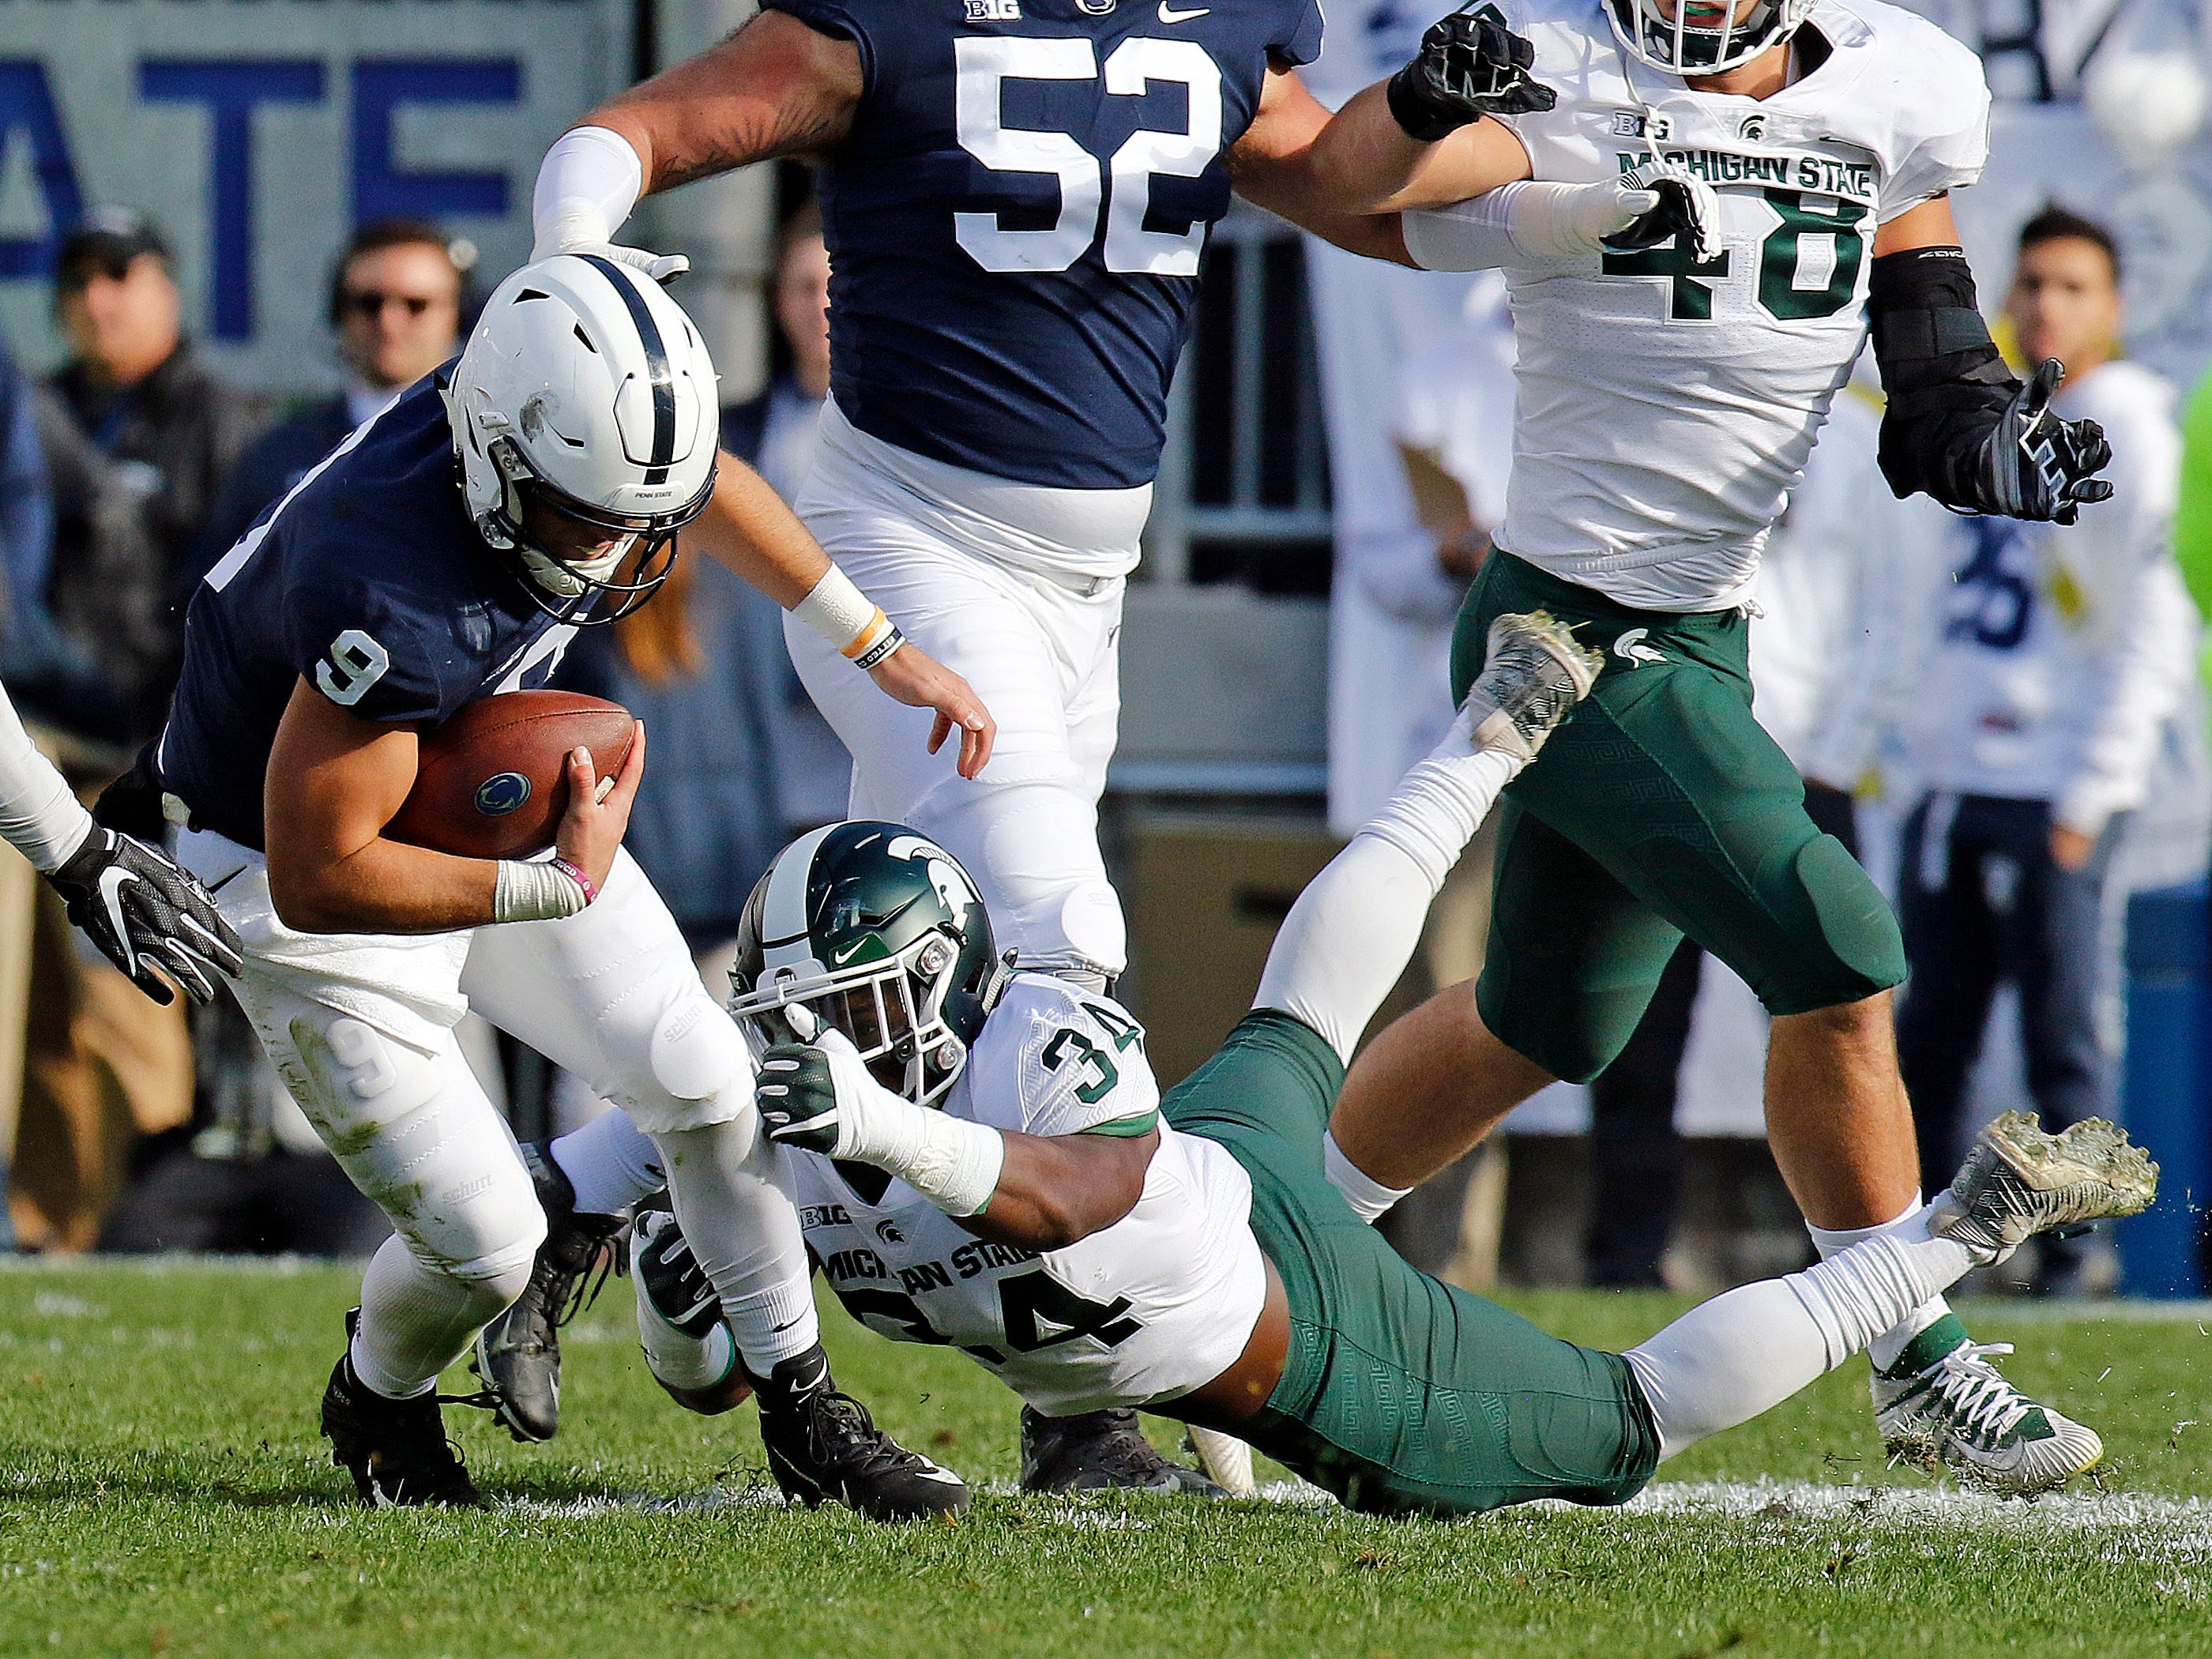 Antjuan Simmons #34 of the Michigan State Spartans tackles Trace McSorley #9 of the Penn State Nittany Lions on October 13, 2018 at Beaver Stadium in State College, Pennsylvania.